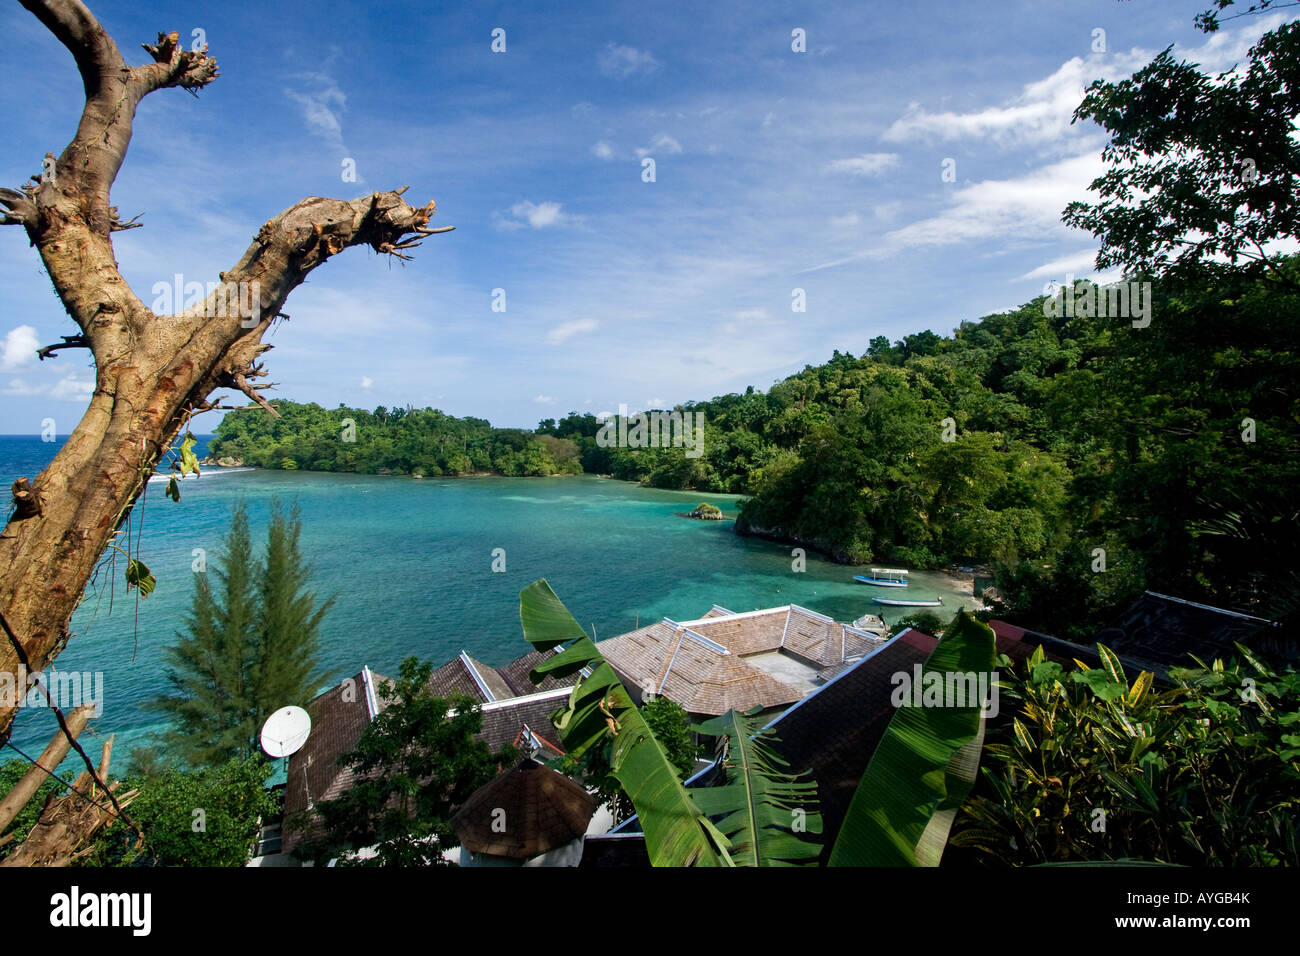 Jamaica Port Antonio Tropical landscape near blue lagoon - Stock Image